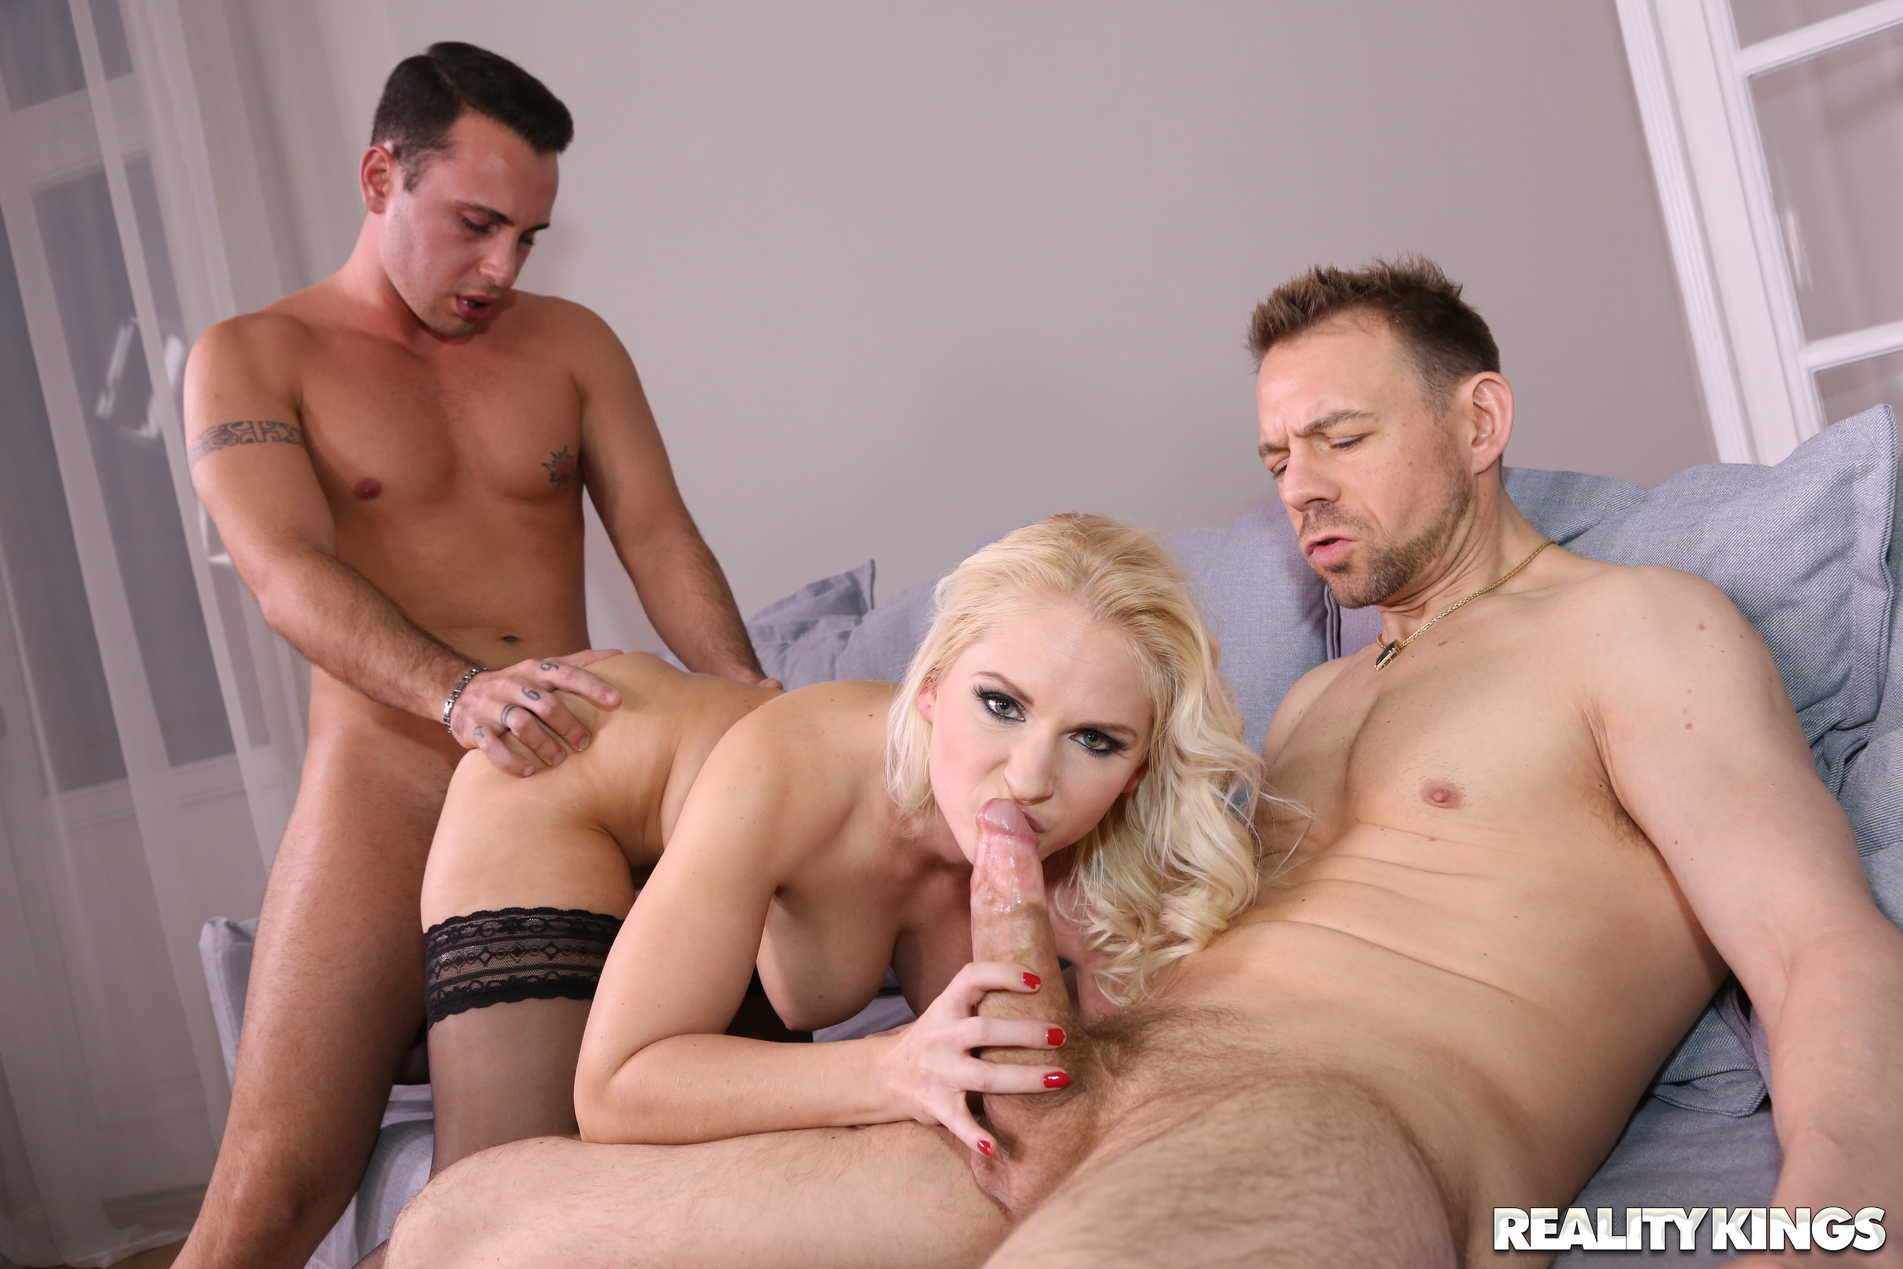 Reality Kings 'My Cheating Wife Rossella' starring Rossella Visconti (Photo 117)